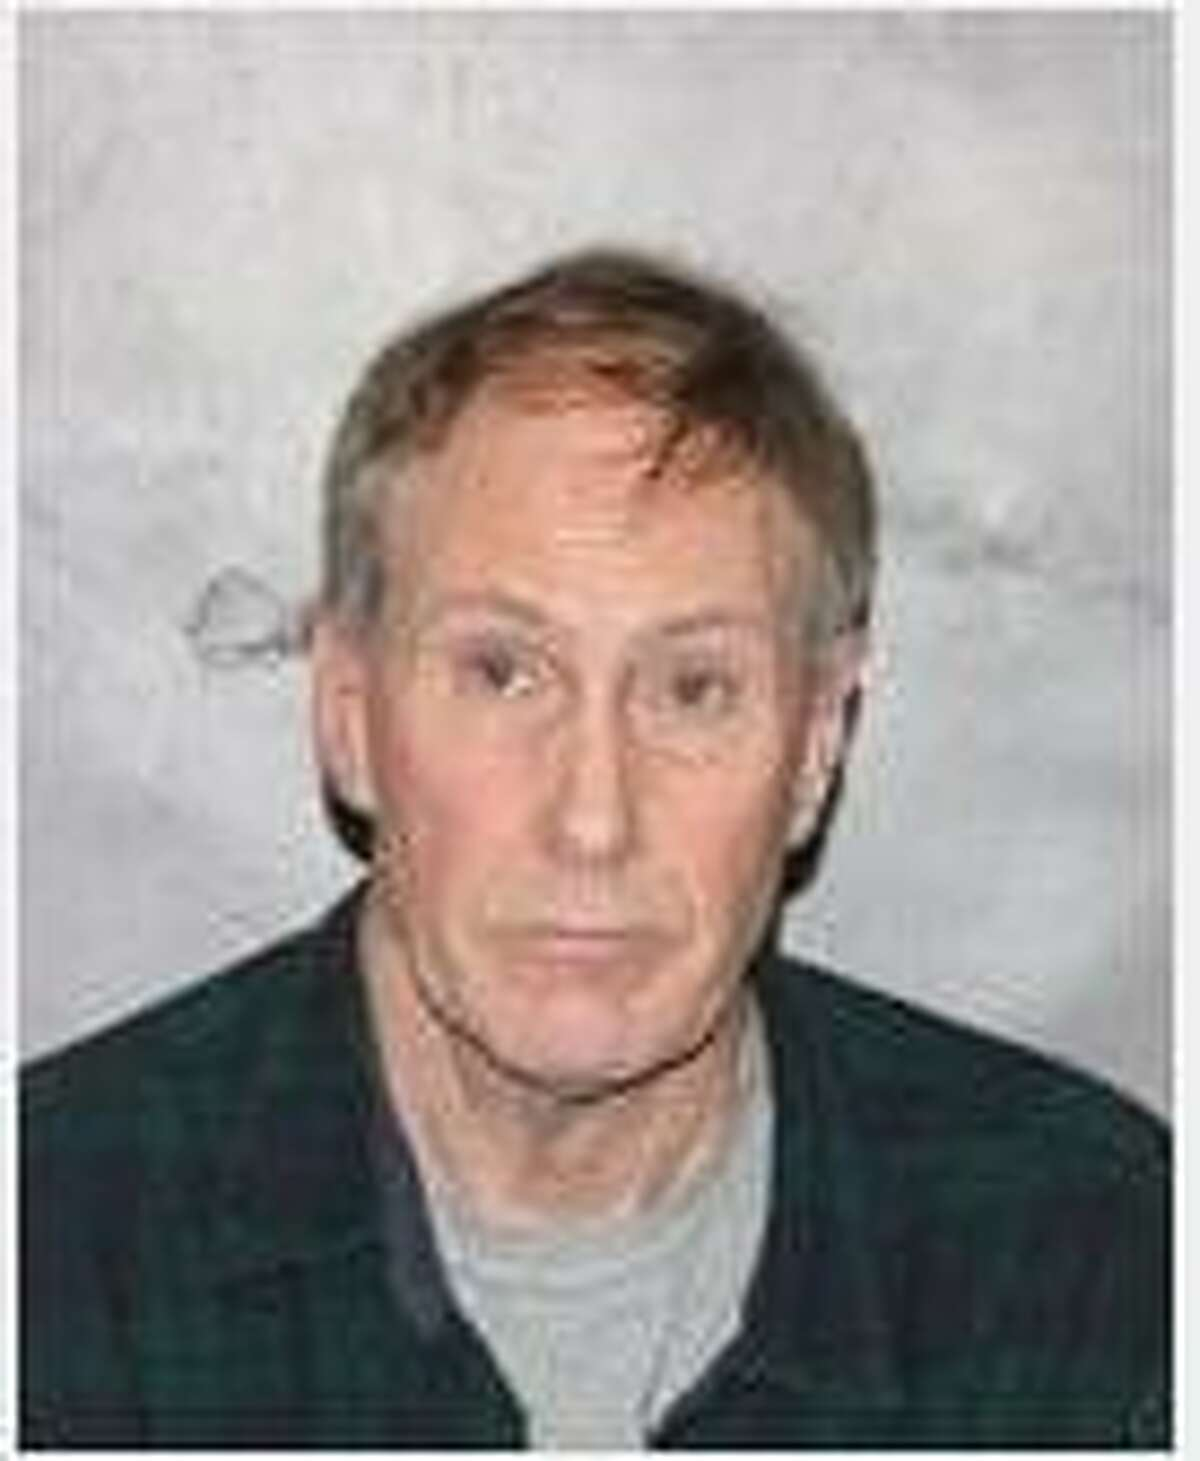 Six men were arrested after allegedly attempting to entice a minor into sexual activity via a computer. Here, Louis B. Pieper.